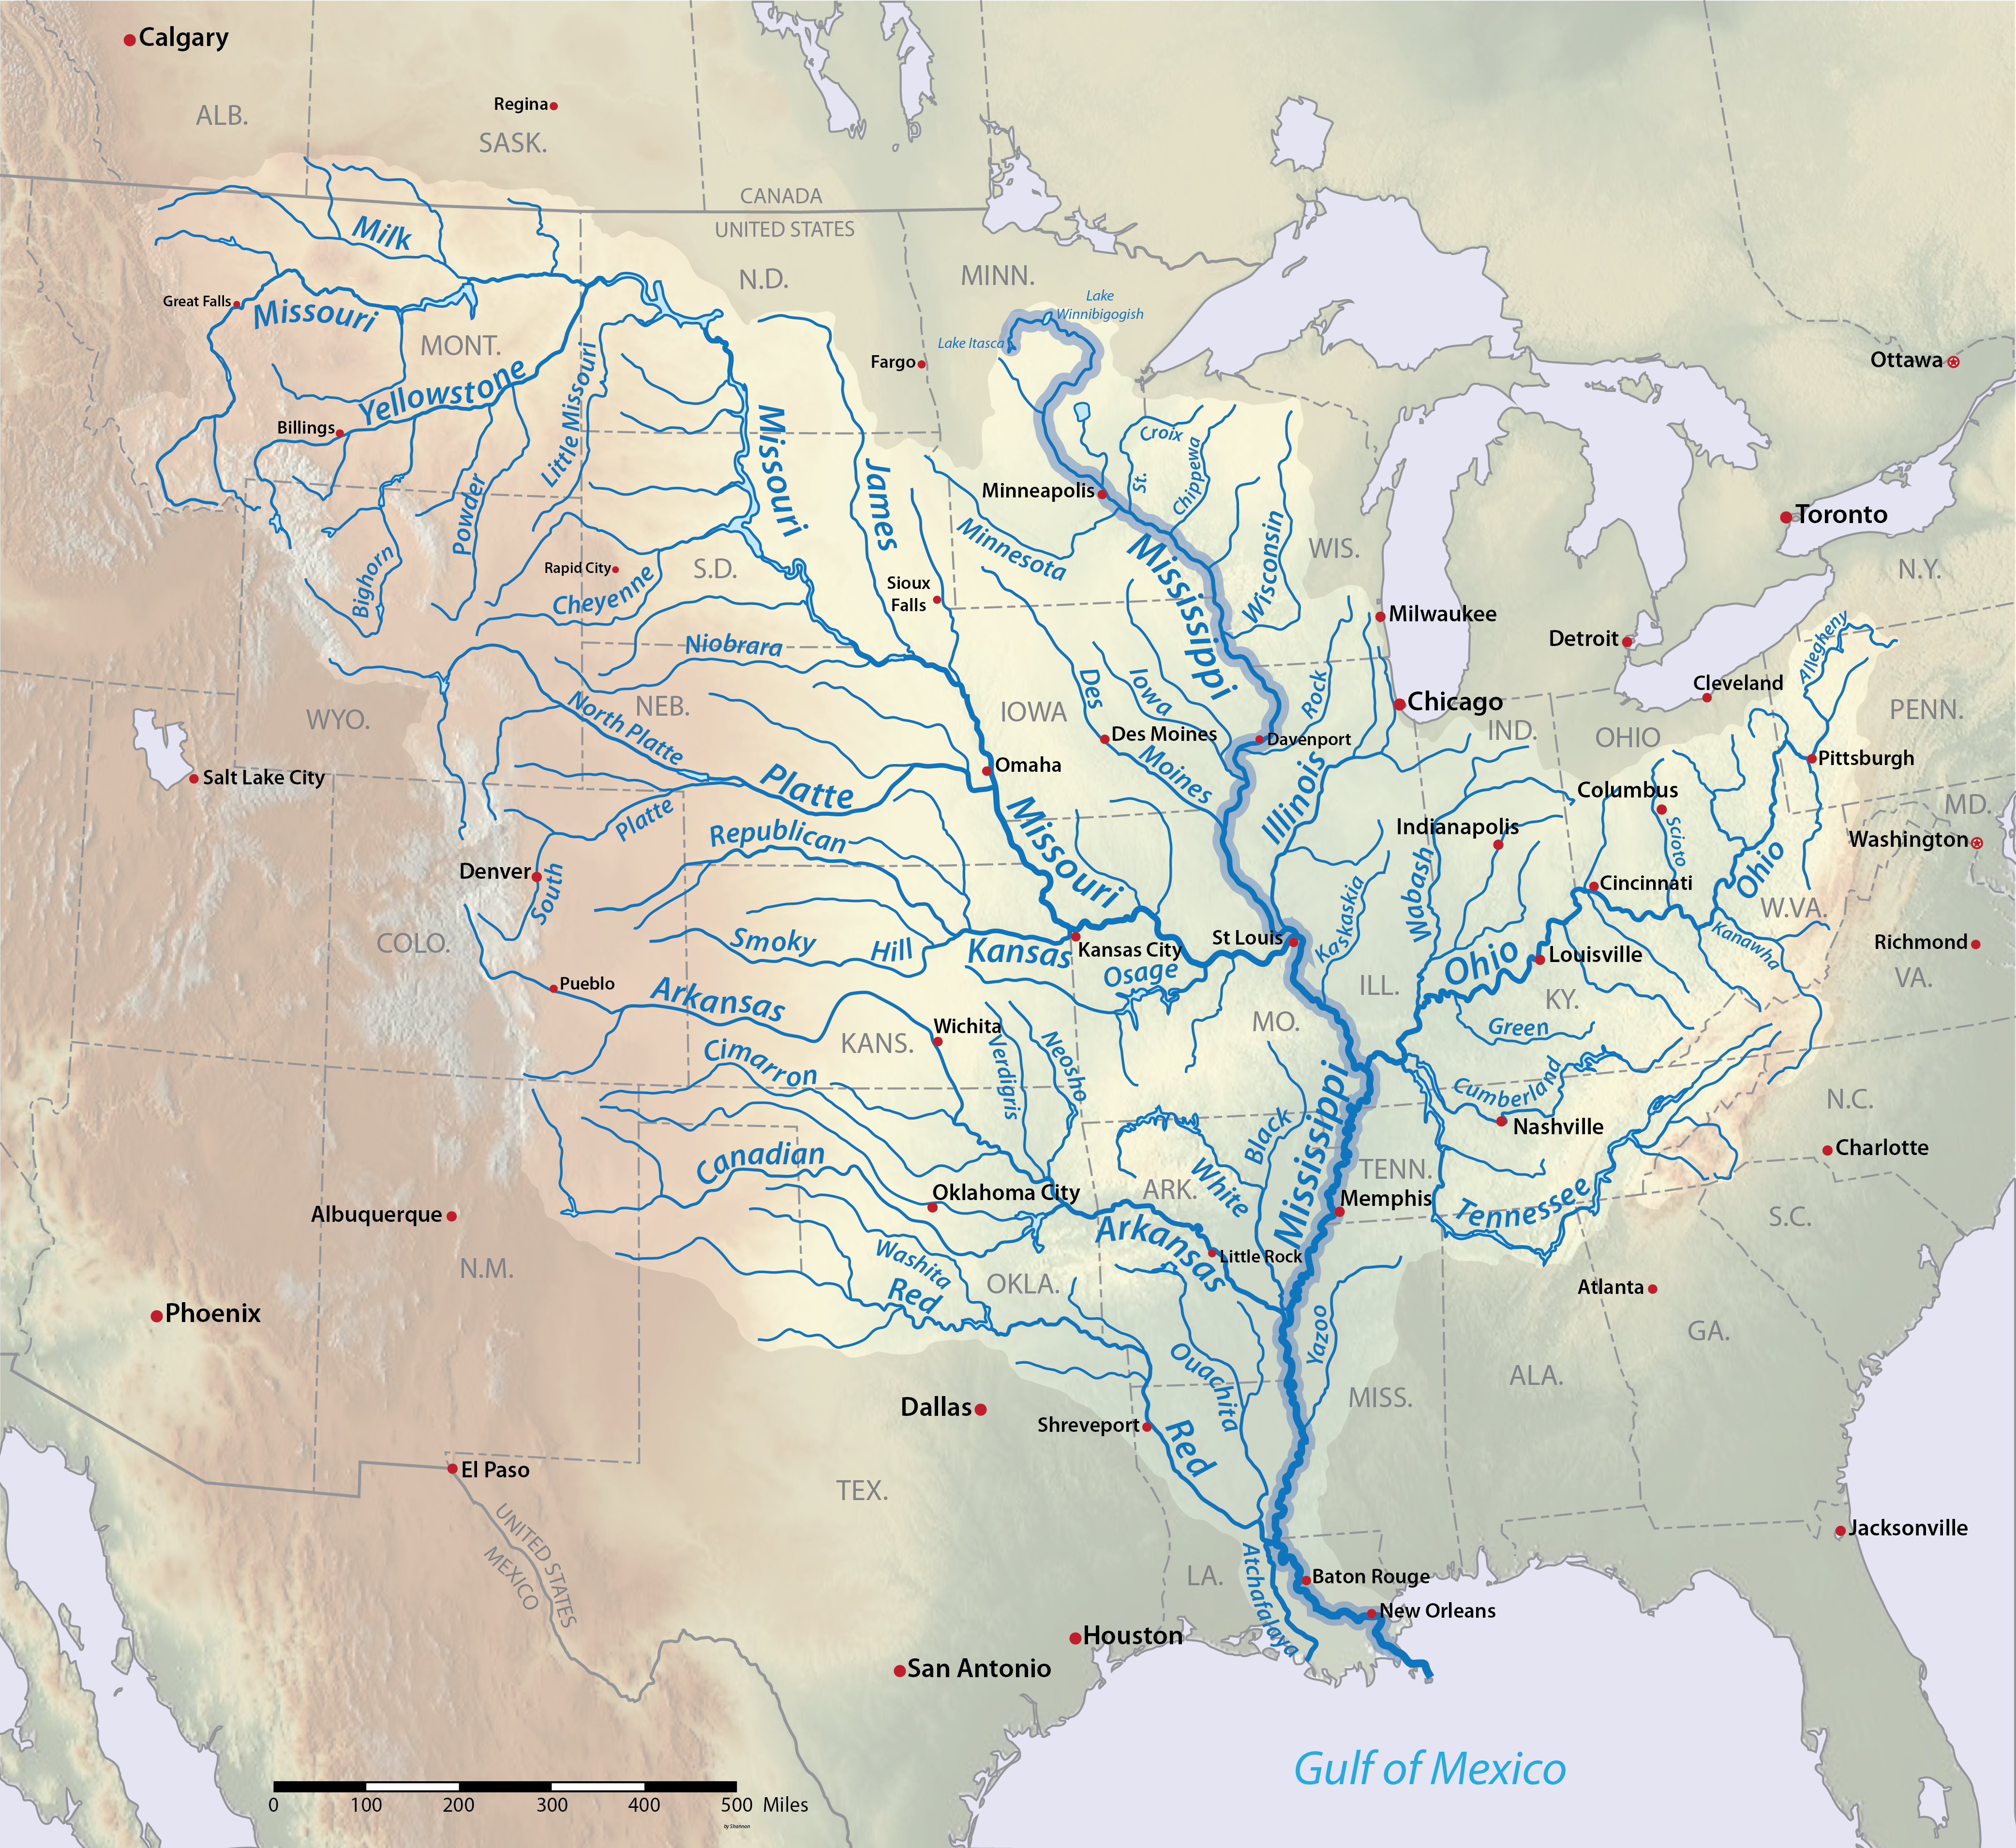 File:Mississippiriver-new-01.png - Wikimedia Commons